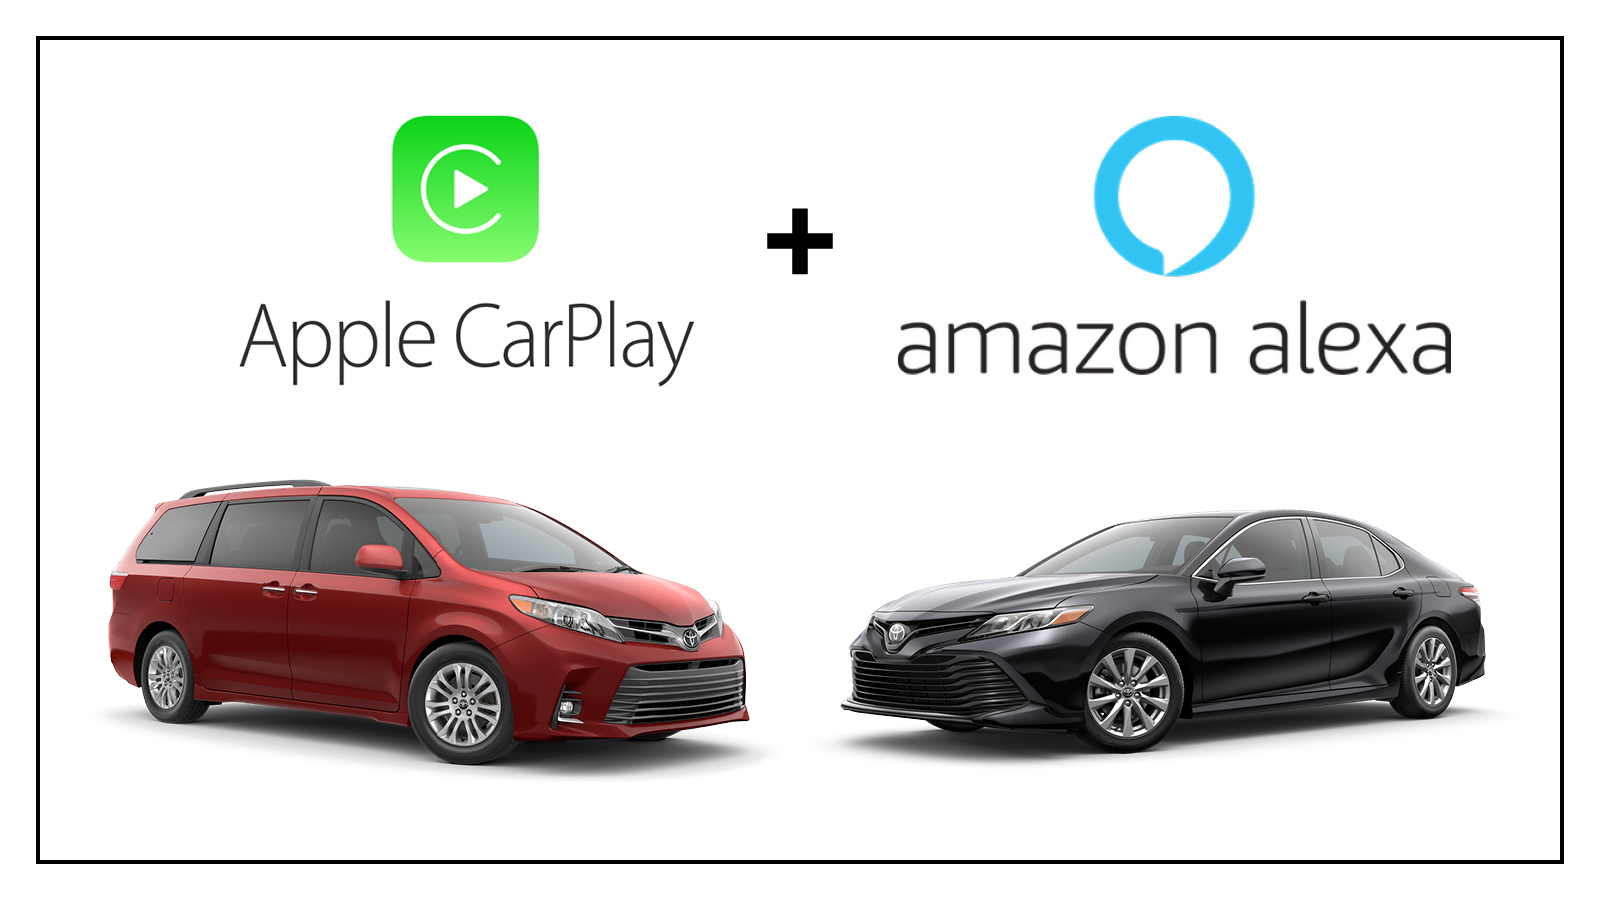 Le Carplay And Alexa Are Coming To The 2019 Toyota Camry Sienna